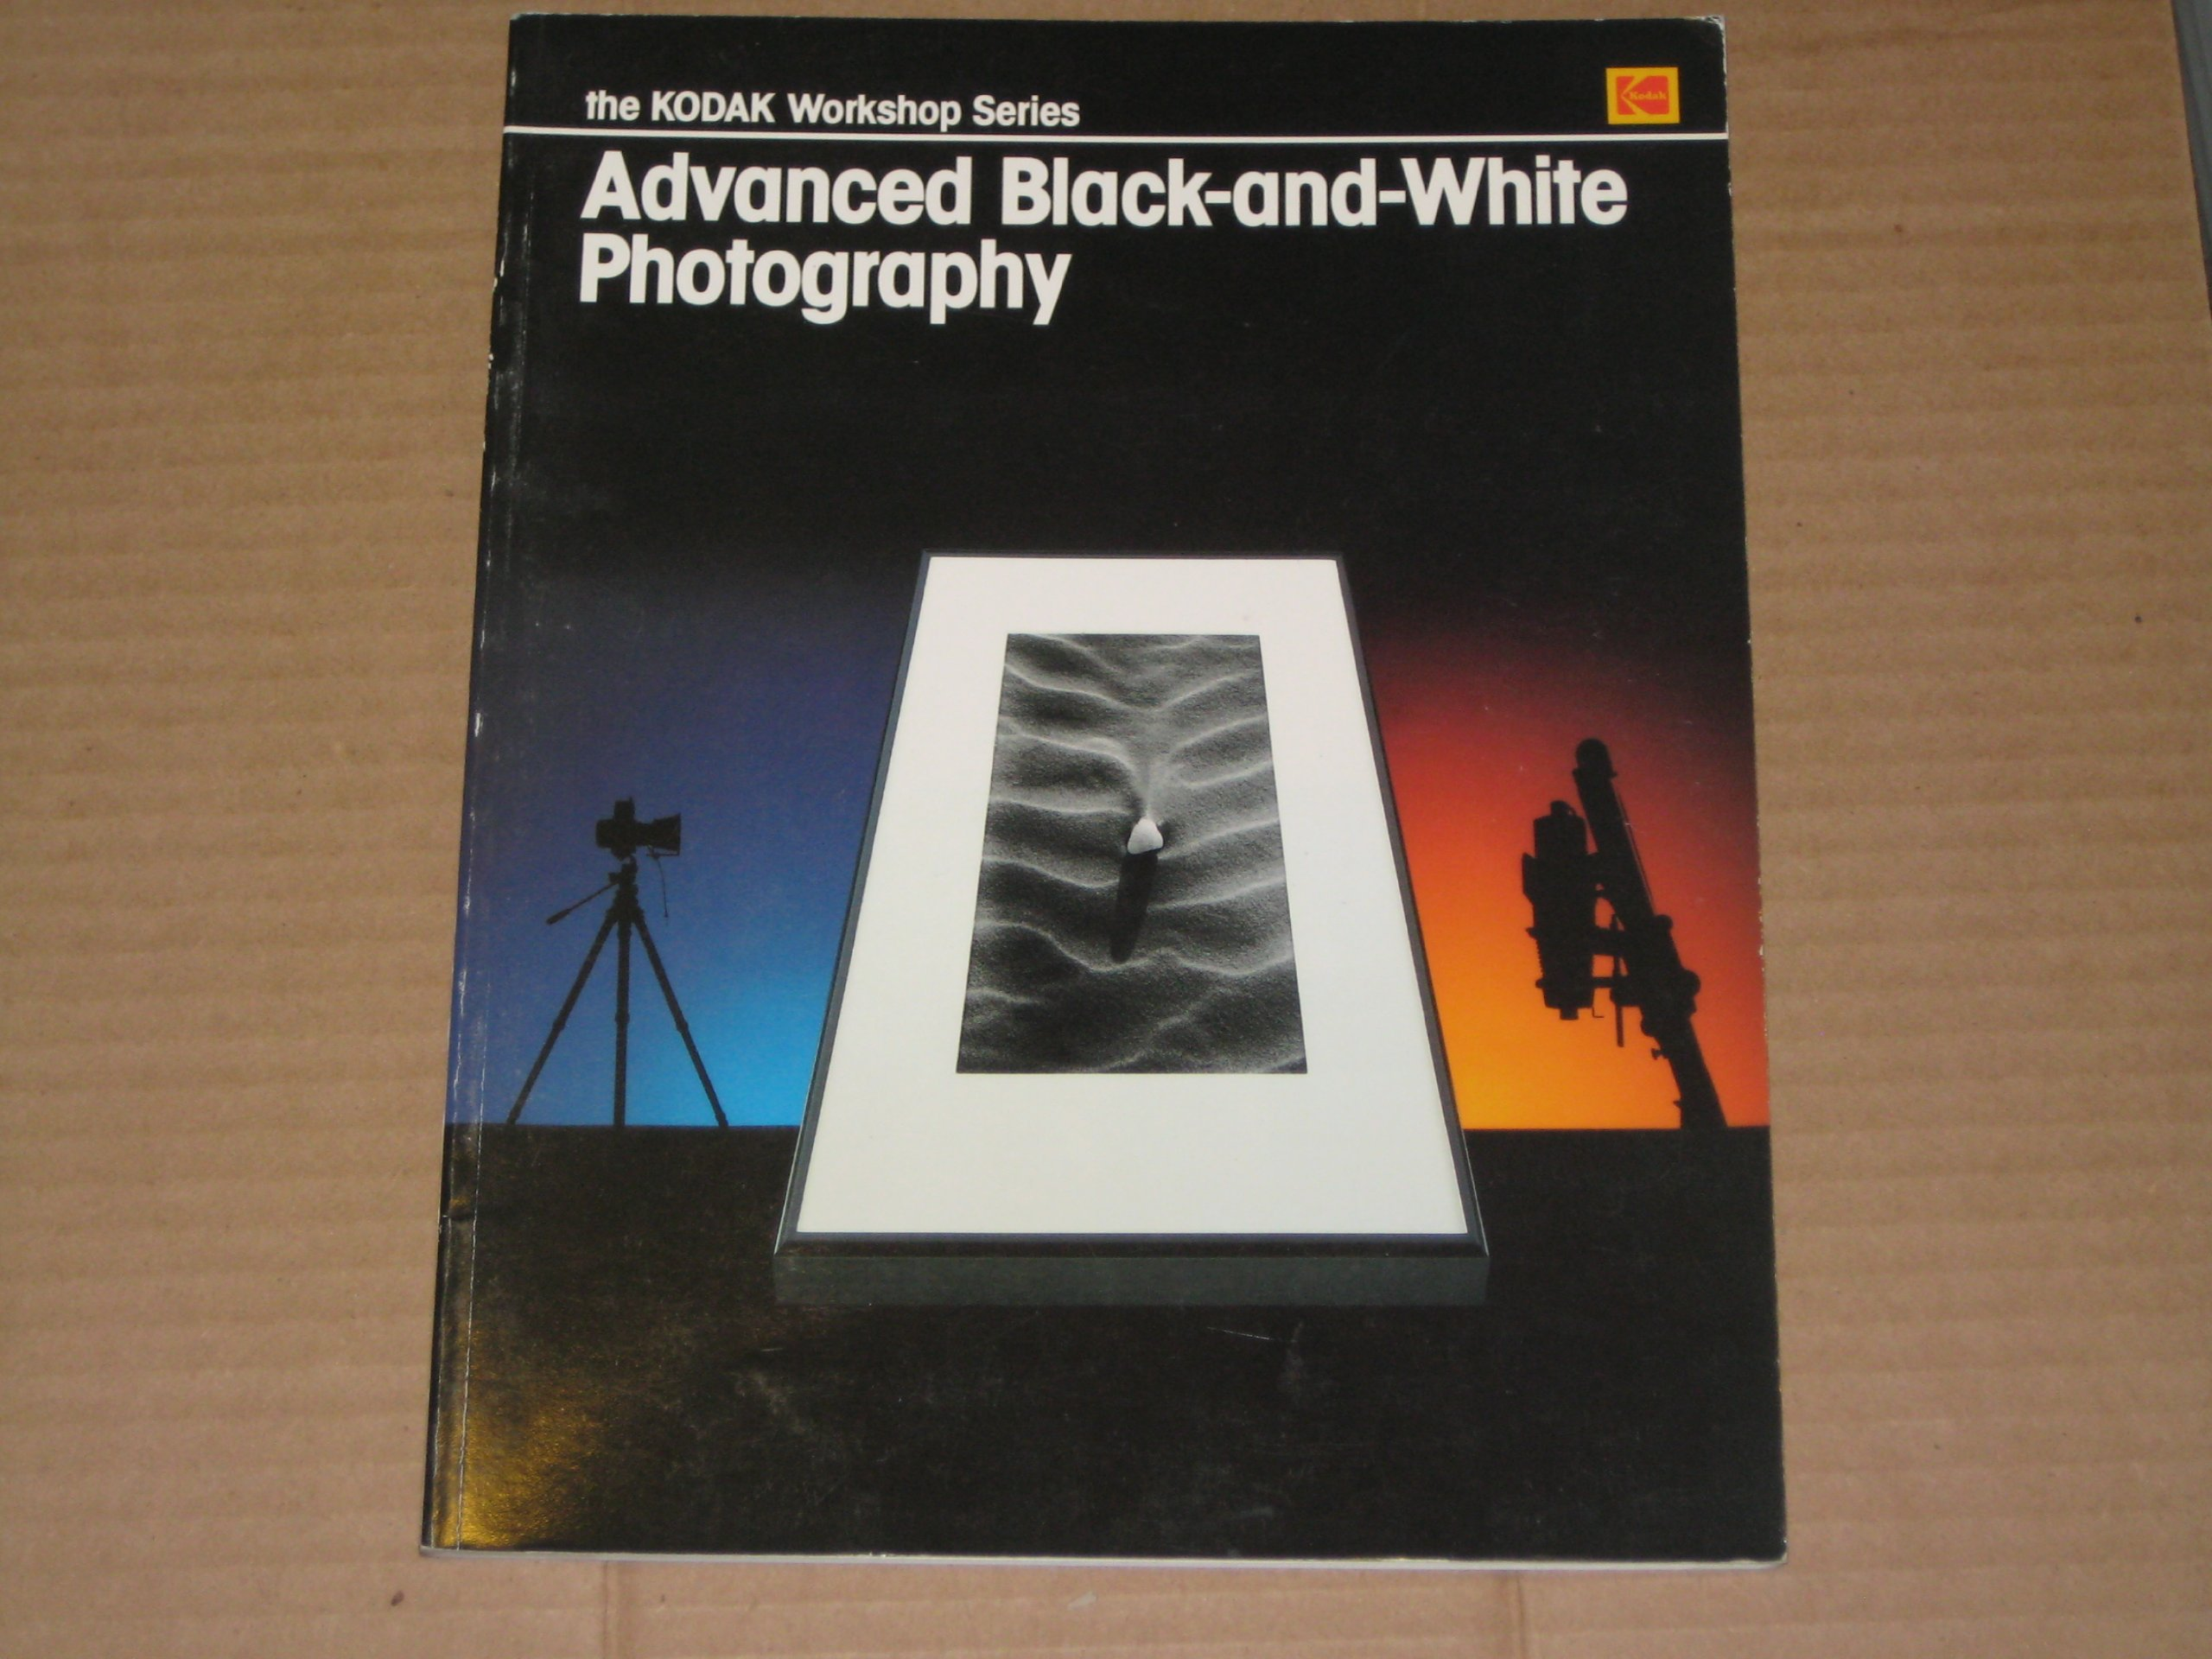 Advanced Black and White Photography (Kodak Workshop Series) Paperback – December, 1988